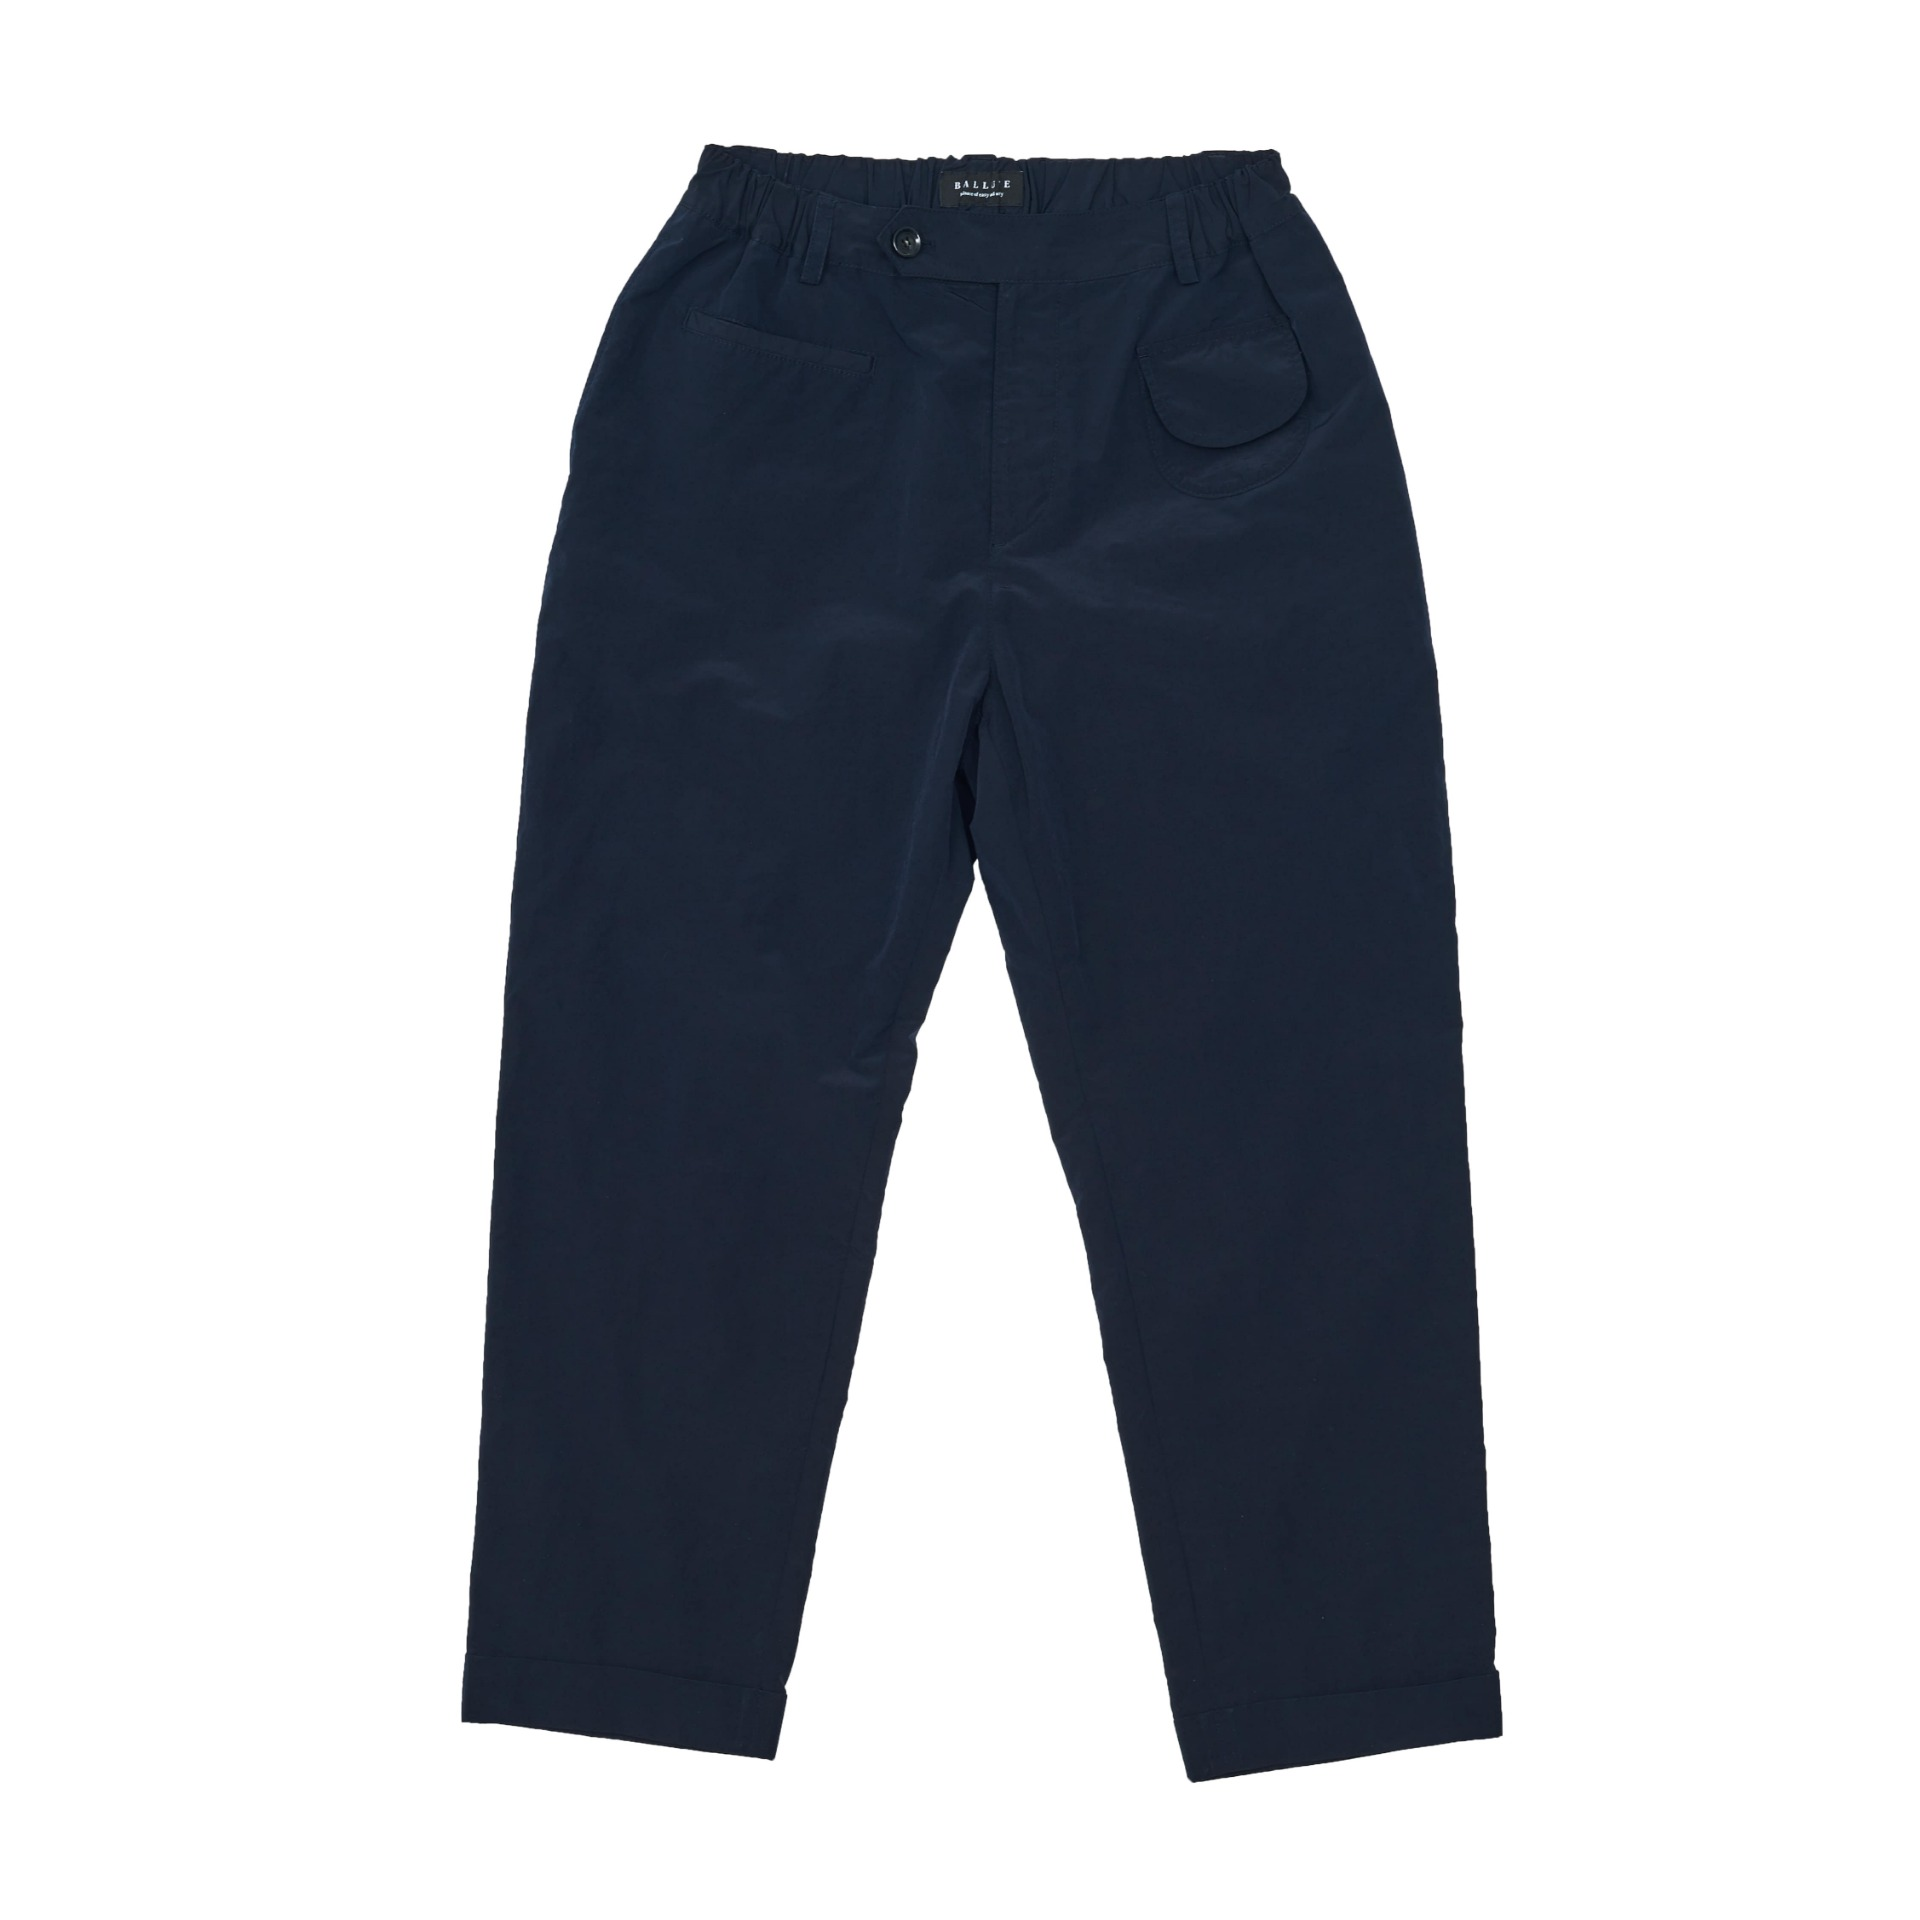 ALL WEATHER PANTS (NAVY)